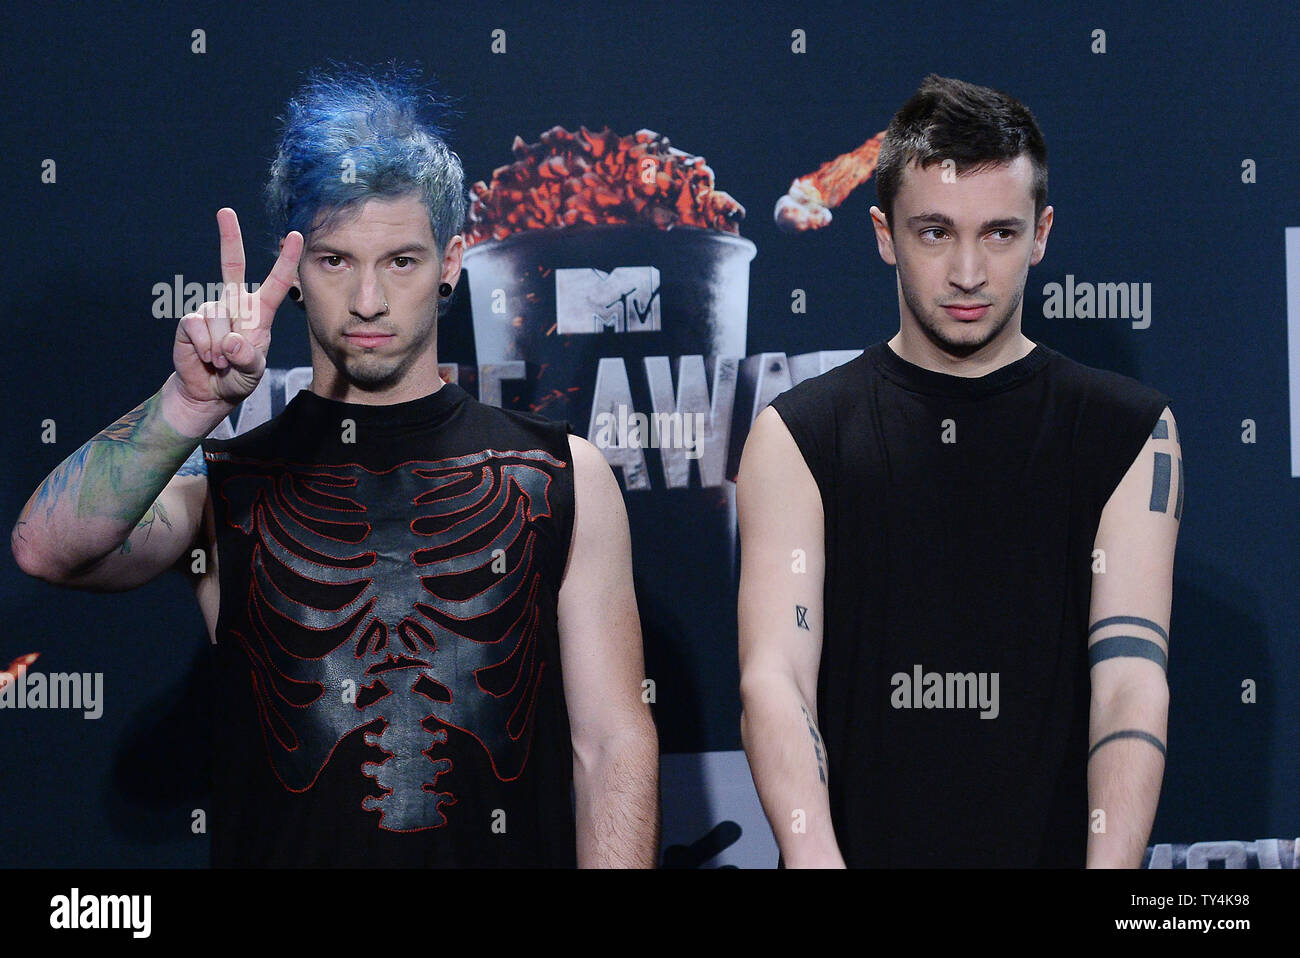 Musicians Josh Dun and Tyler Joseph of Twenty One Pilots appear backstage at The MTV Movie Awards at Nokia Theatre L.A. Live in Los Angeles, California on April 13, 2014.  UPI/Jim Ruymen Stock Photo